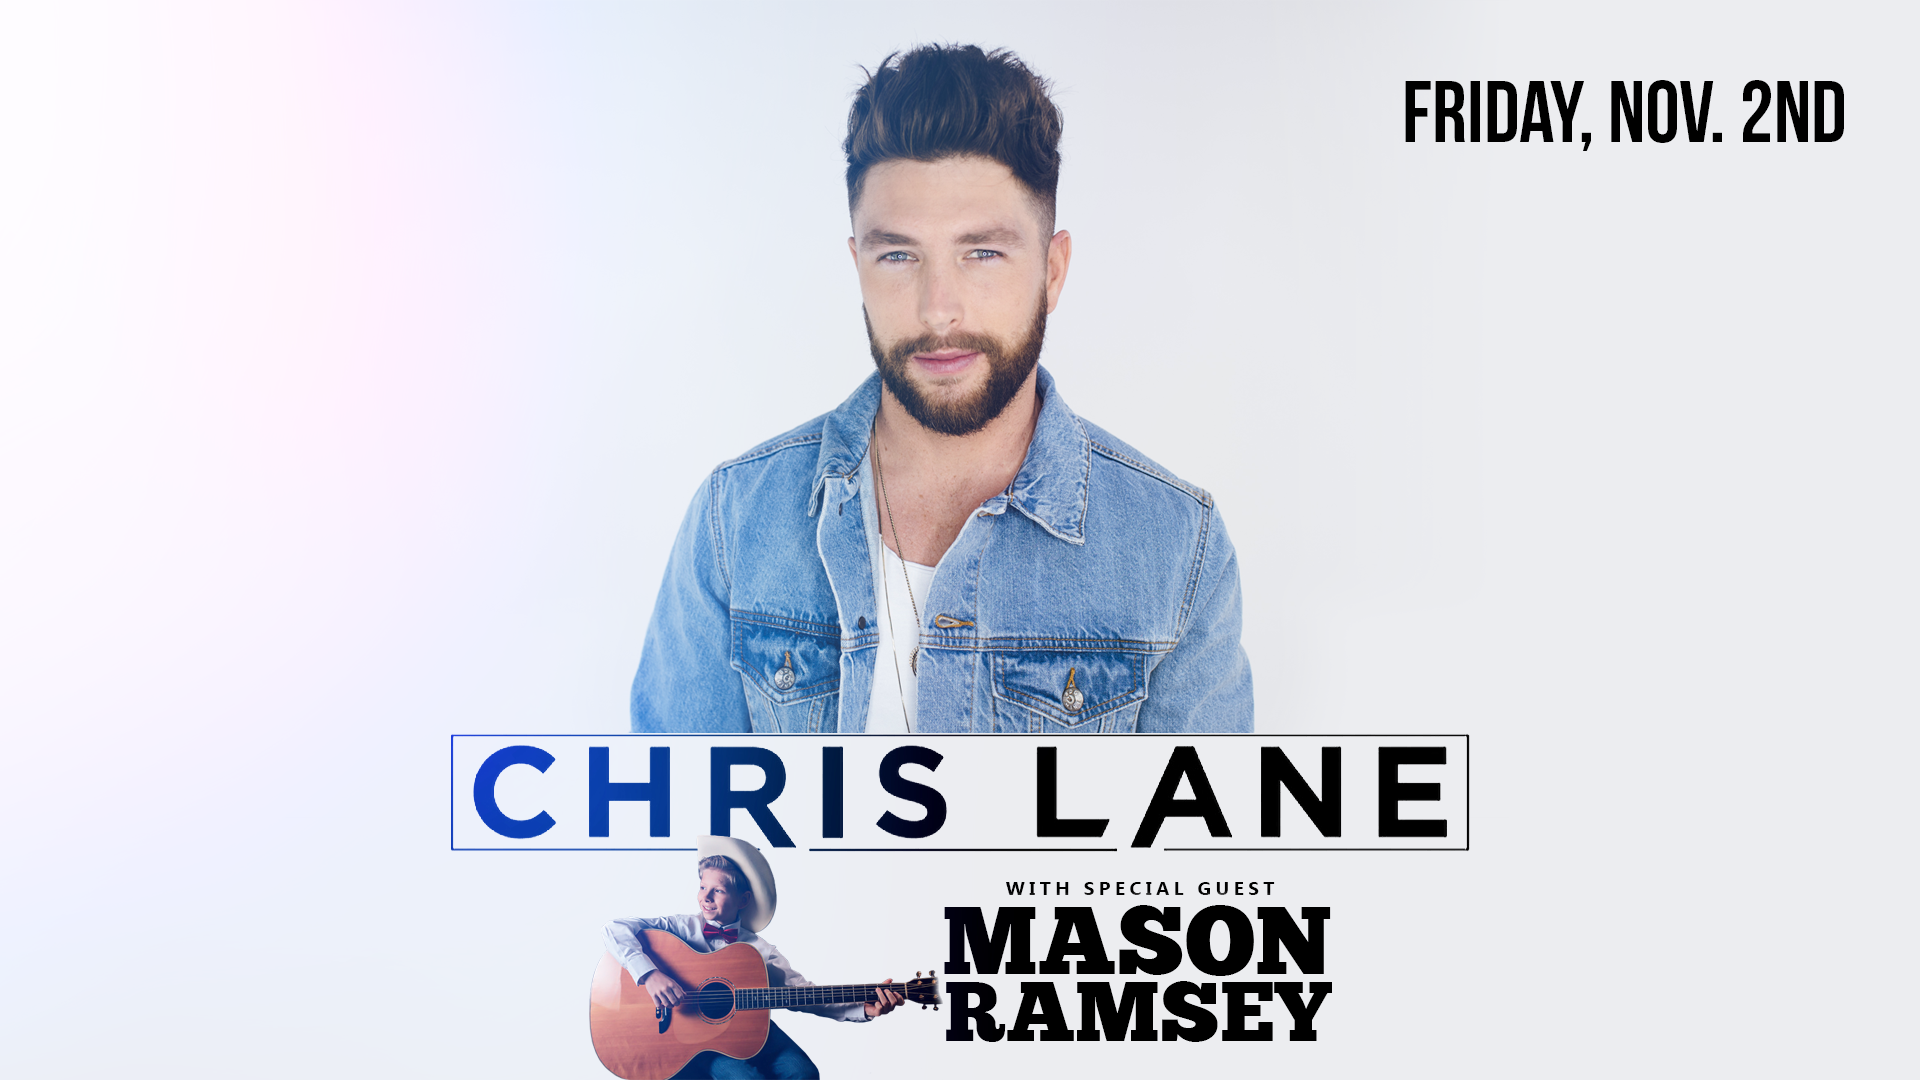 image for event Chris Lane, New Country 107.9 WYYD, 92.9 Kickin Country, 105.5 KD Country Radio, and Mason Ramsey